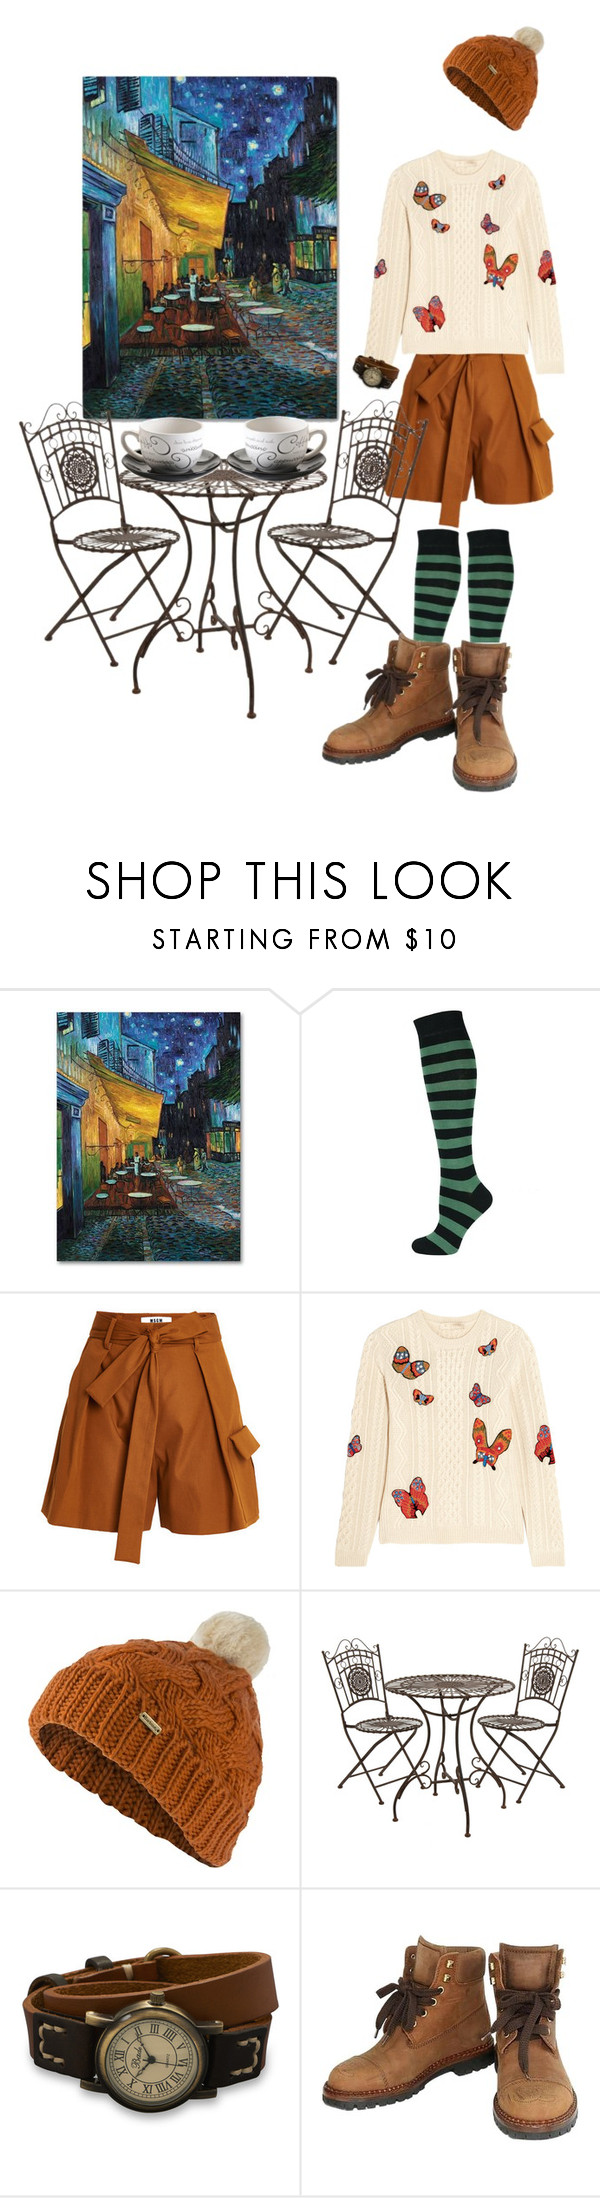 """""""Untitled #49"""" by numomo ❤ liked on Polyvore featuring MSGM, Valentino, Barbour, BillyTheTree, Chanel and Price & Kensington"""